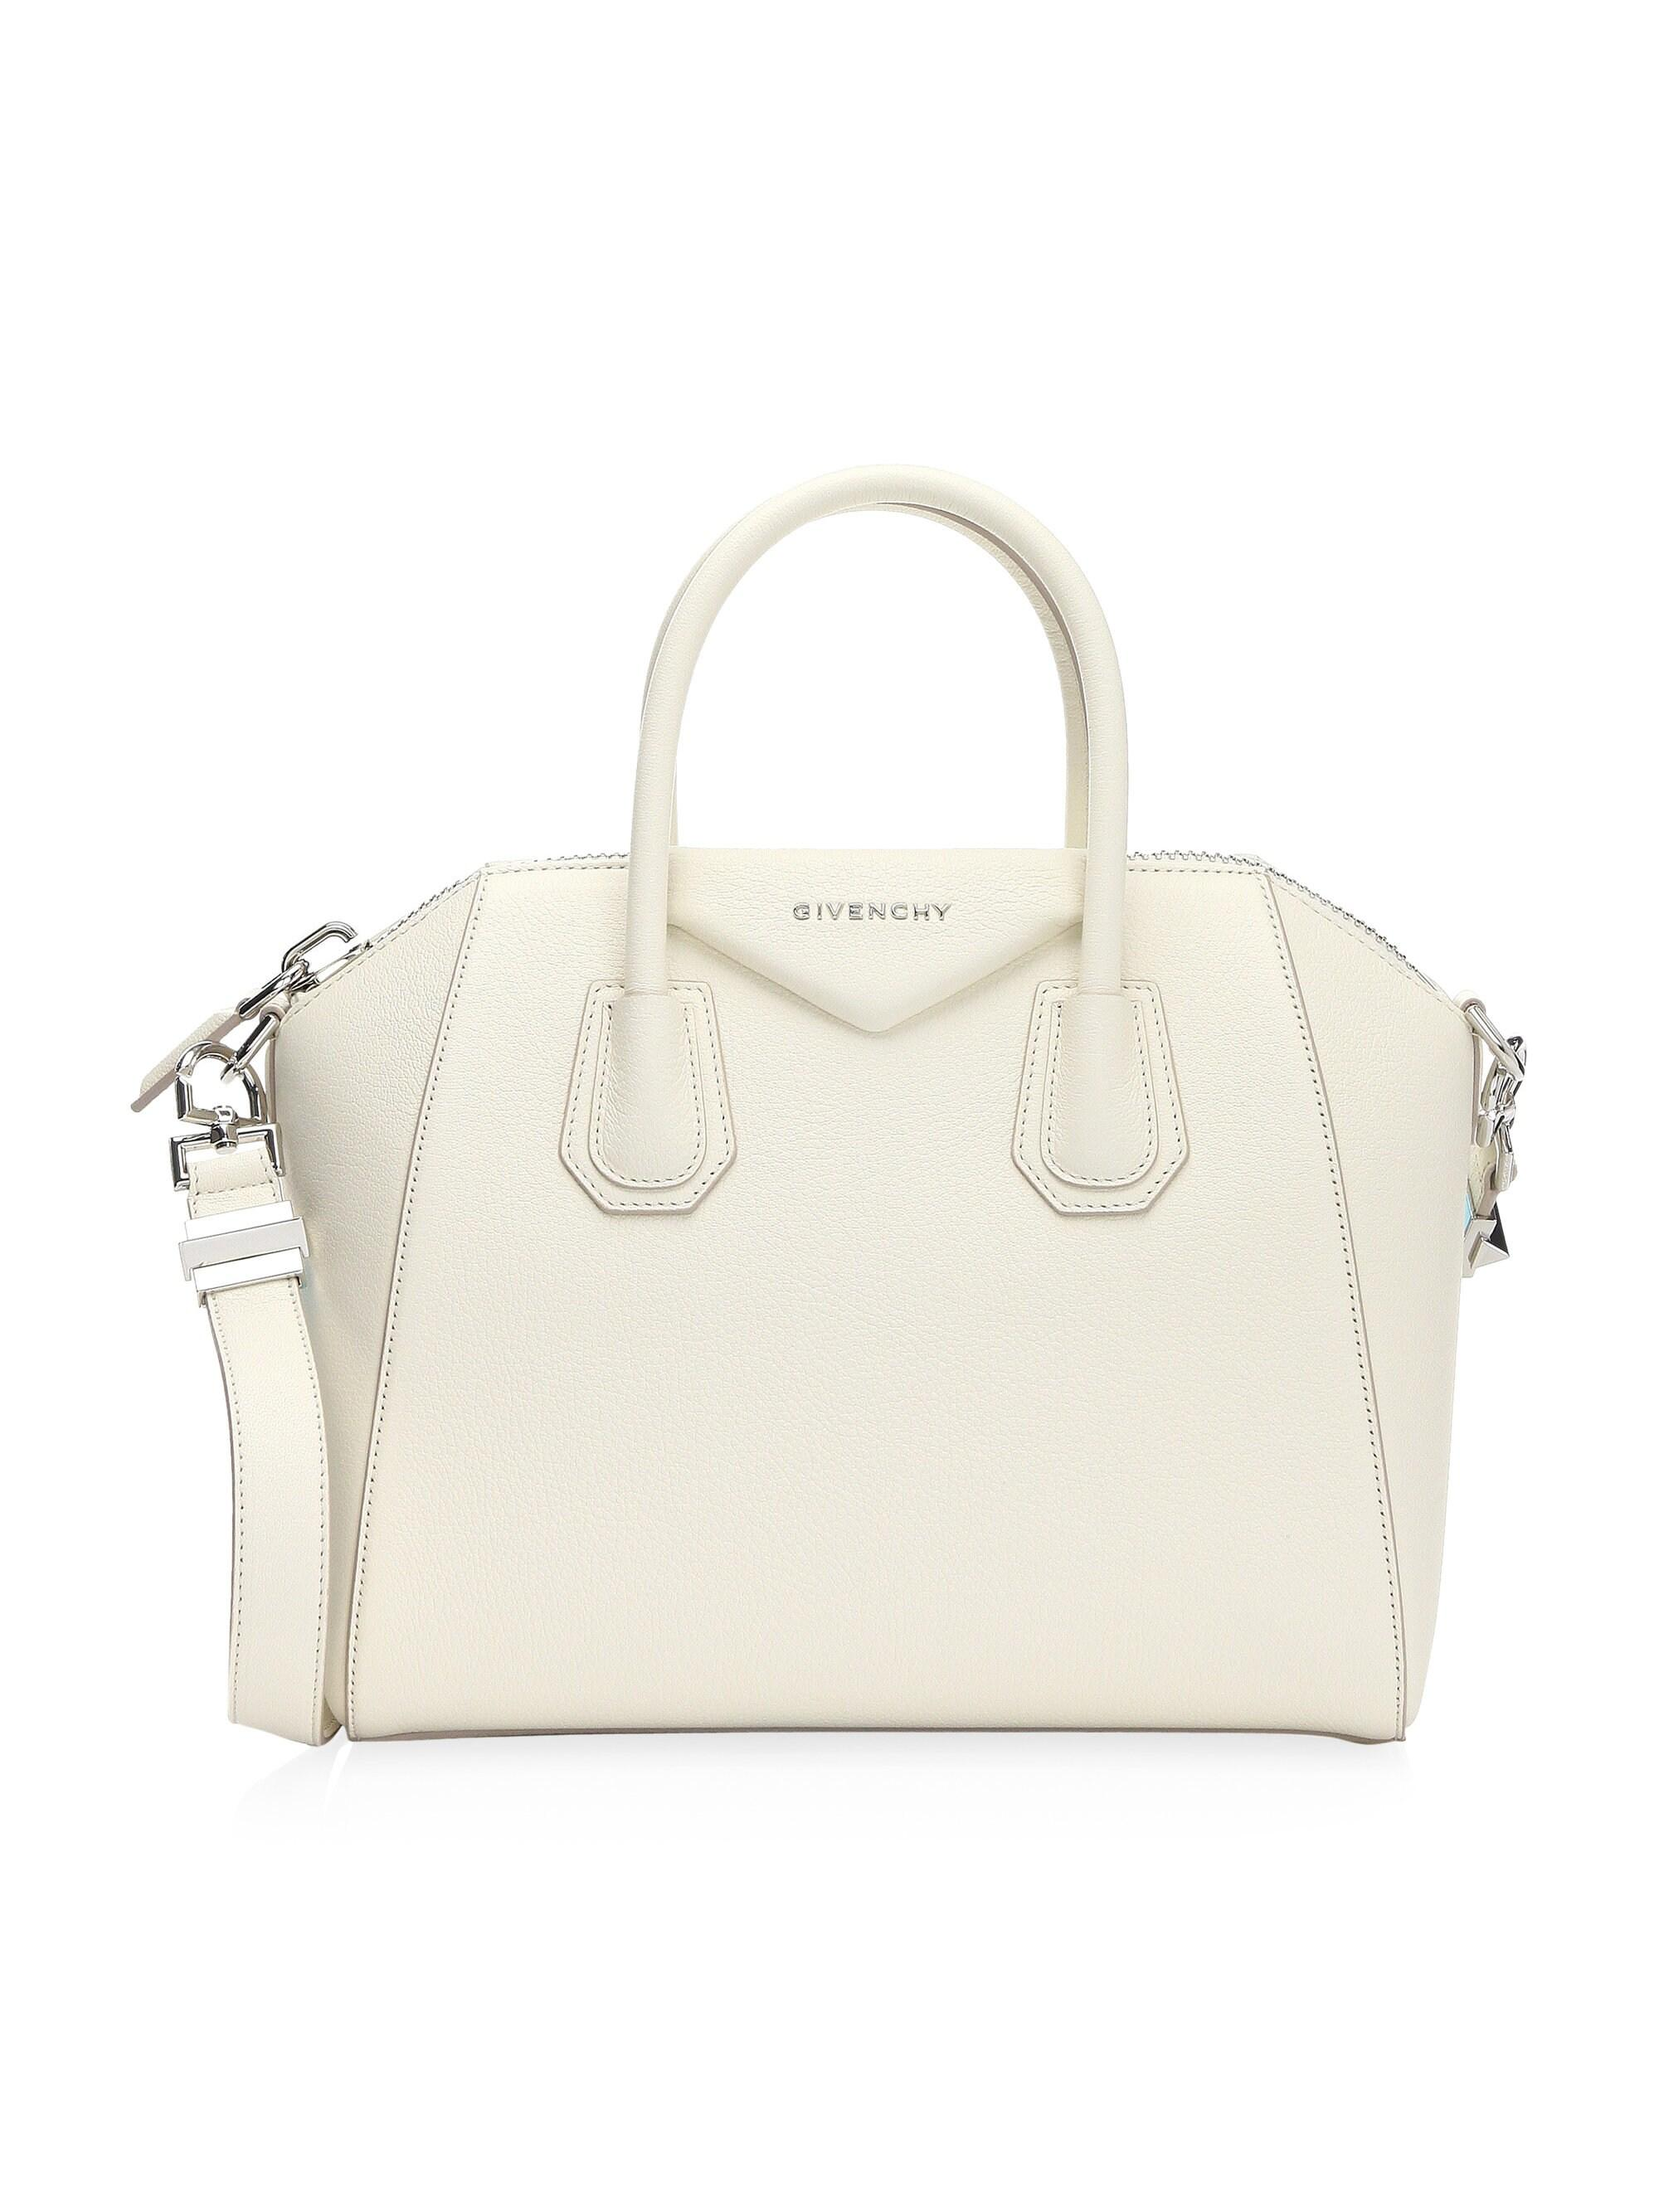 8c6333a3b0a Gallery. Previously sold at: Saks Fifth Avenue · Women's Satchels Women's Givenchy  Antigona